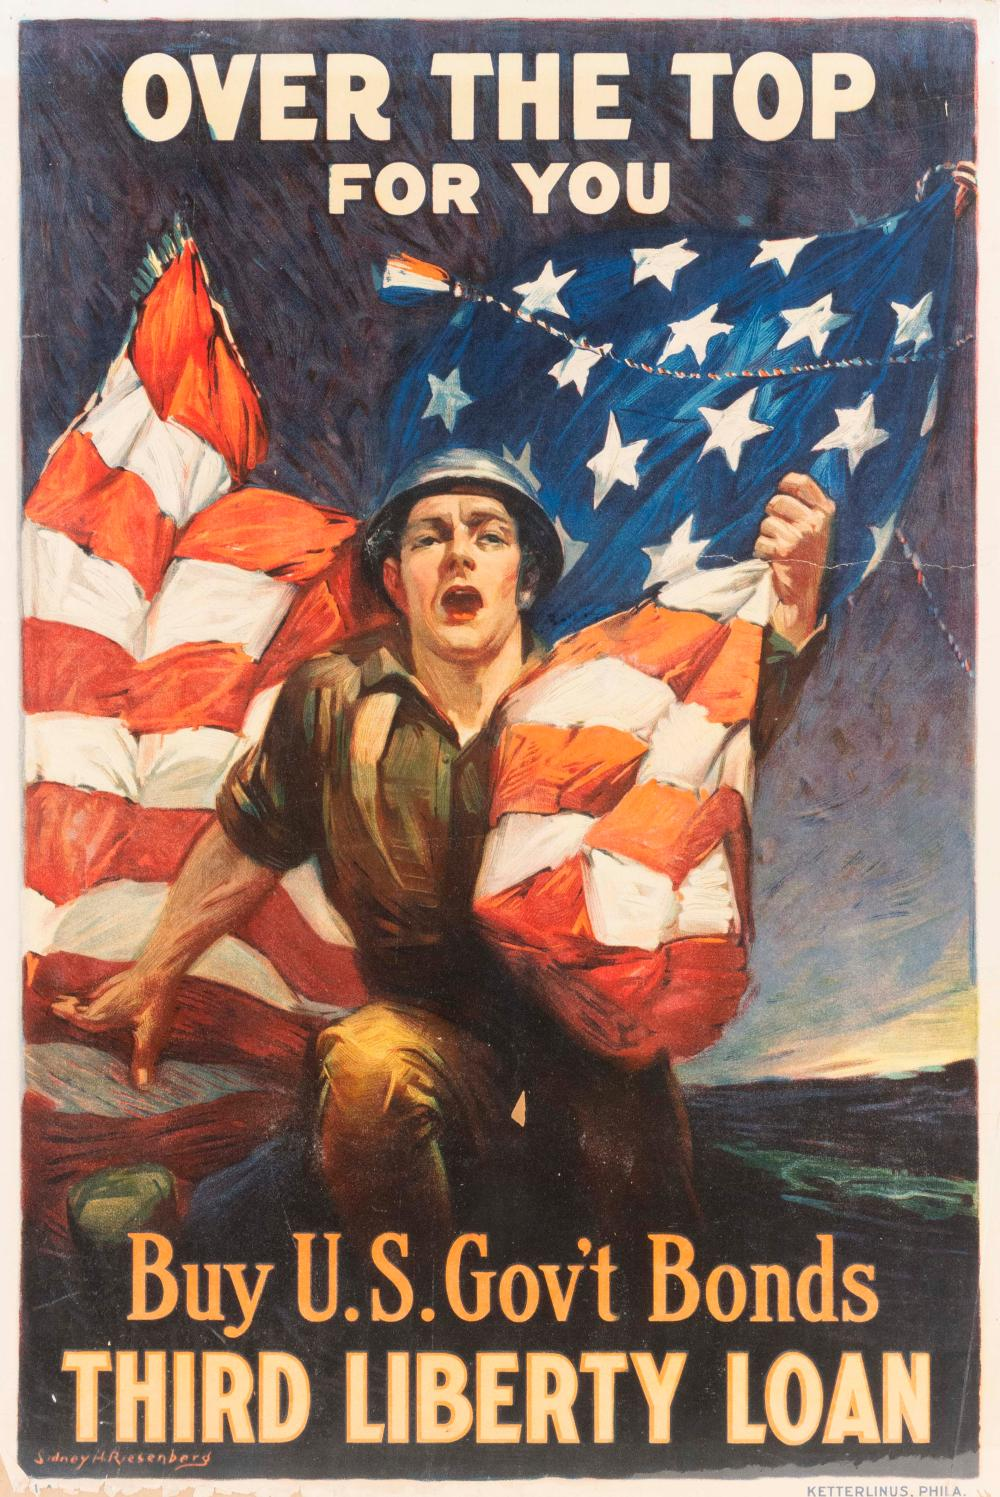 """""""OVER THE TOP FOR YOU BUY U.S. GOV'T BONDS"""" WORLD WAR I POSTER By Sidney H. Riesenberg for the Third Liberty Loan, published by Kett.."""